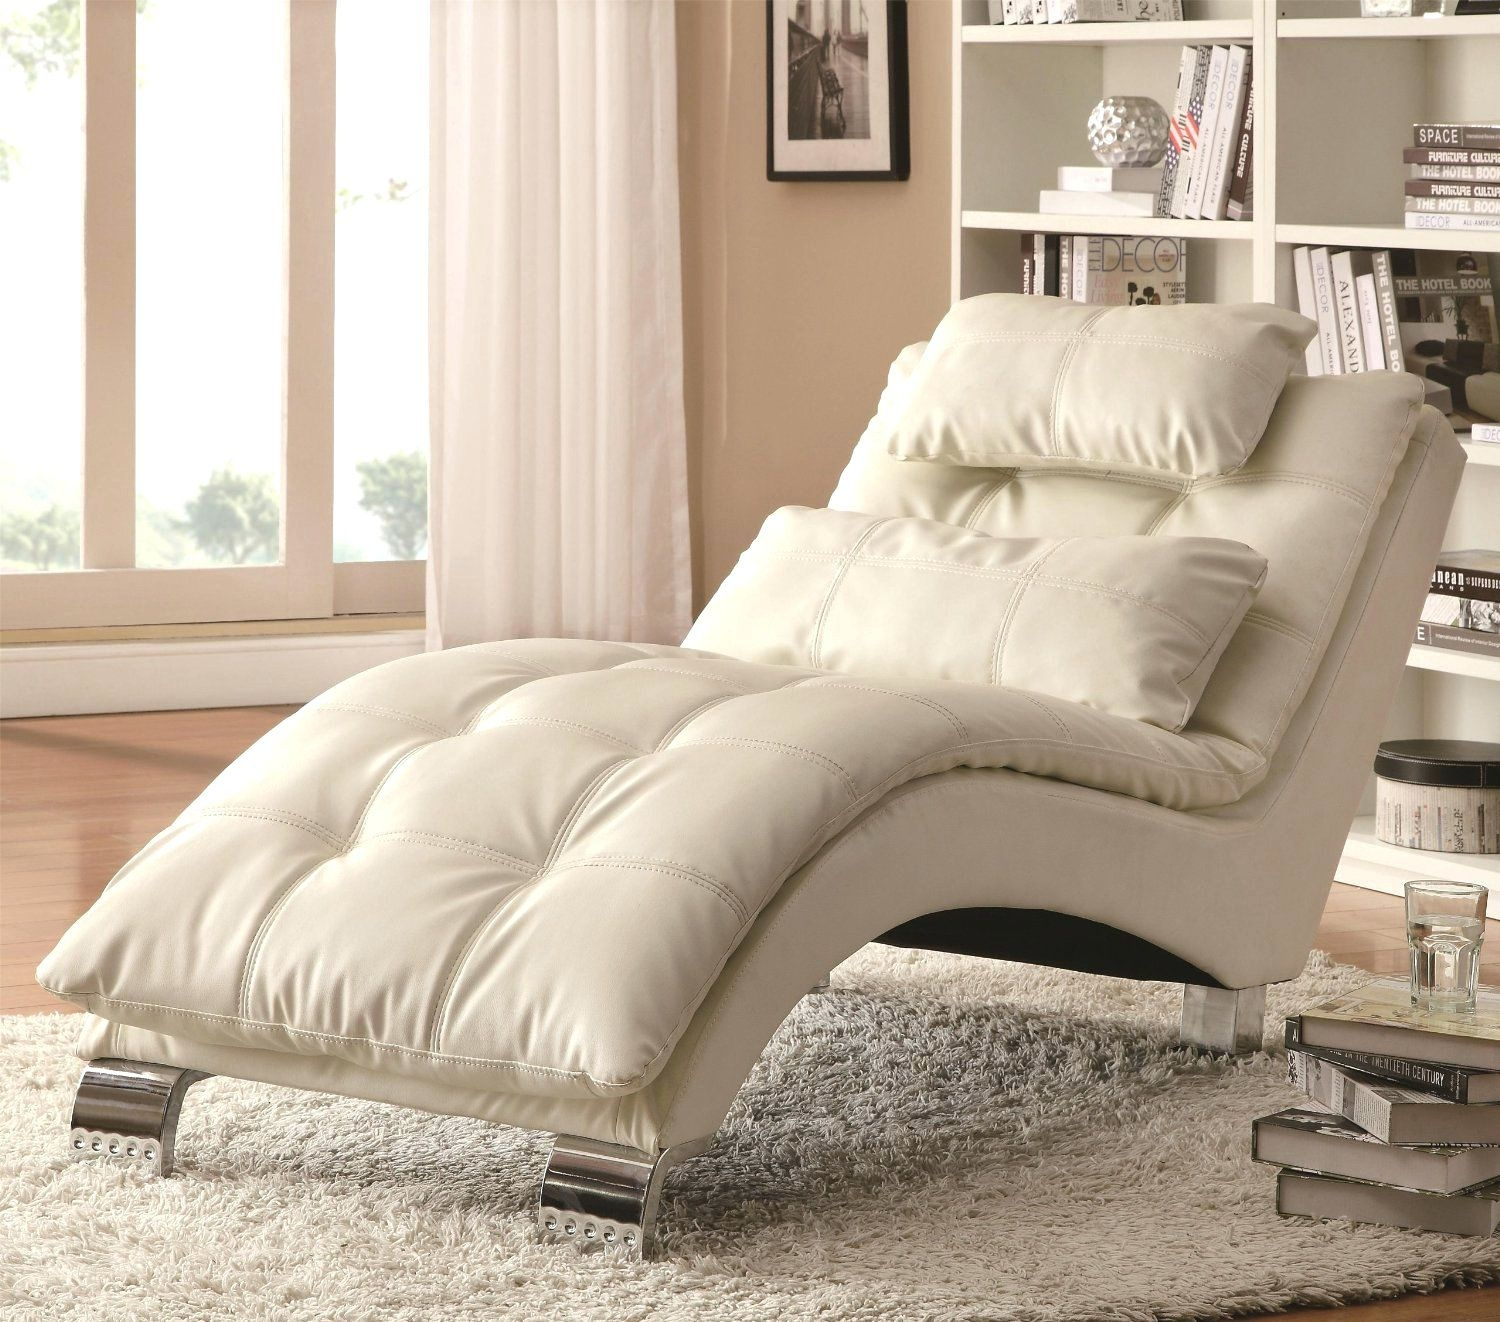 Exceptional Chaise Lounge Chairs For Living Room 9